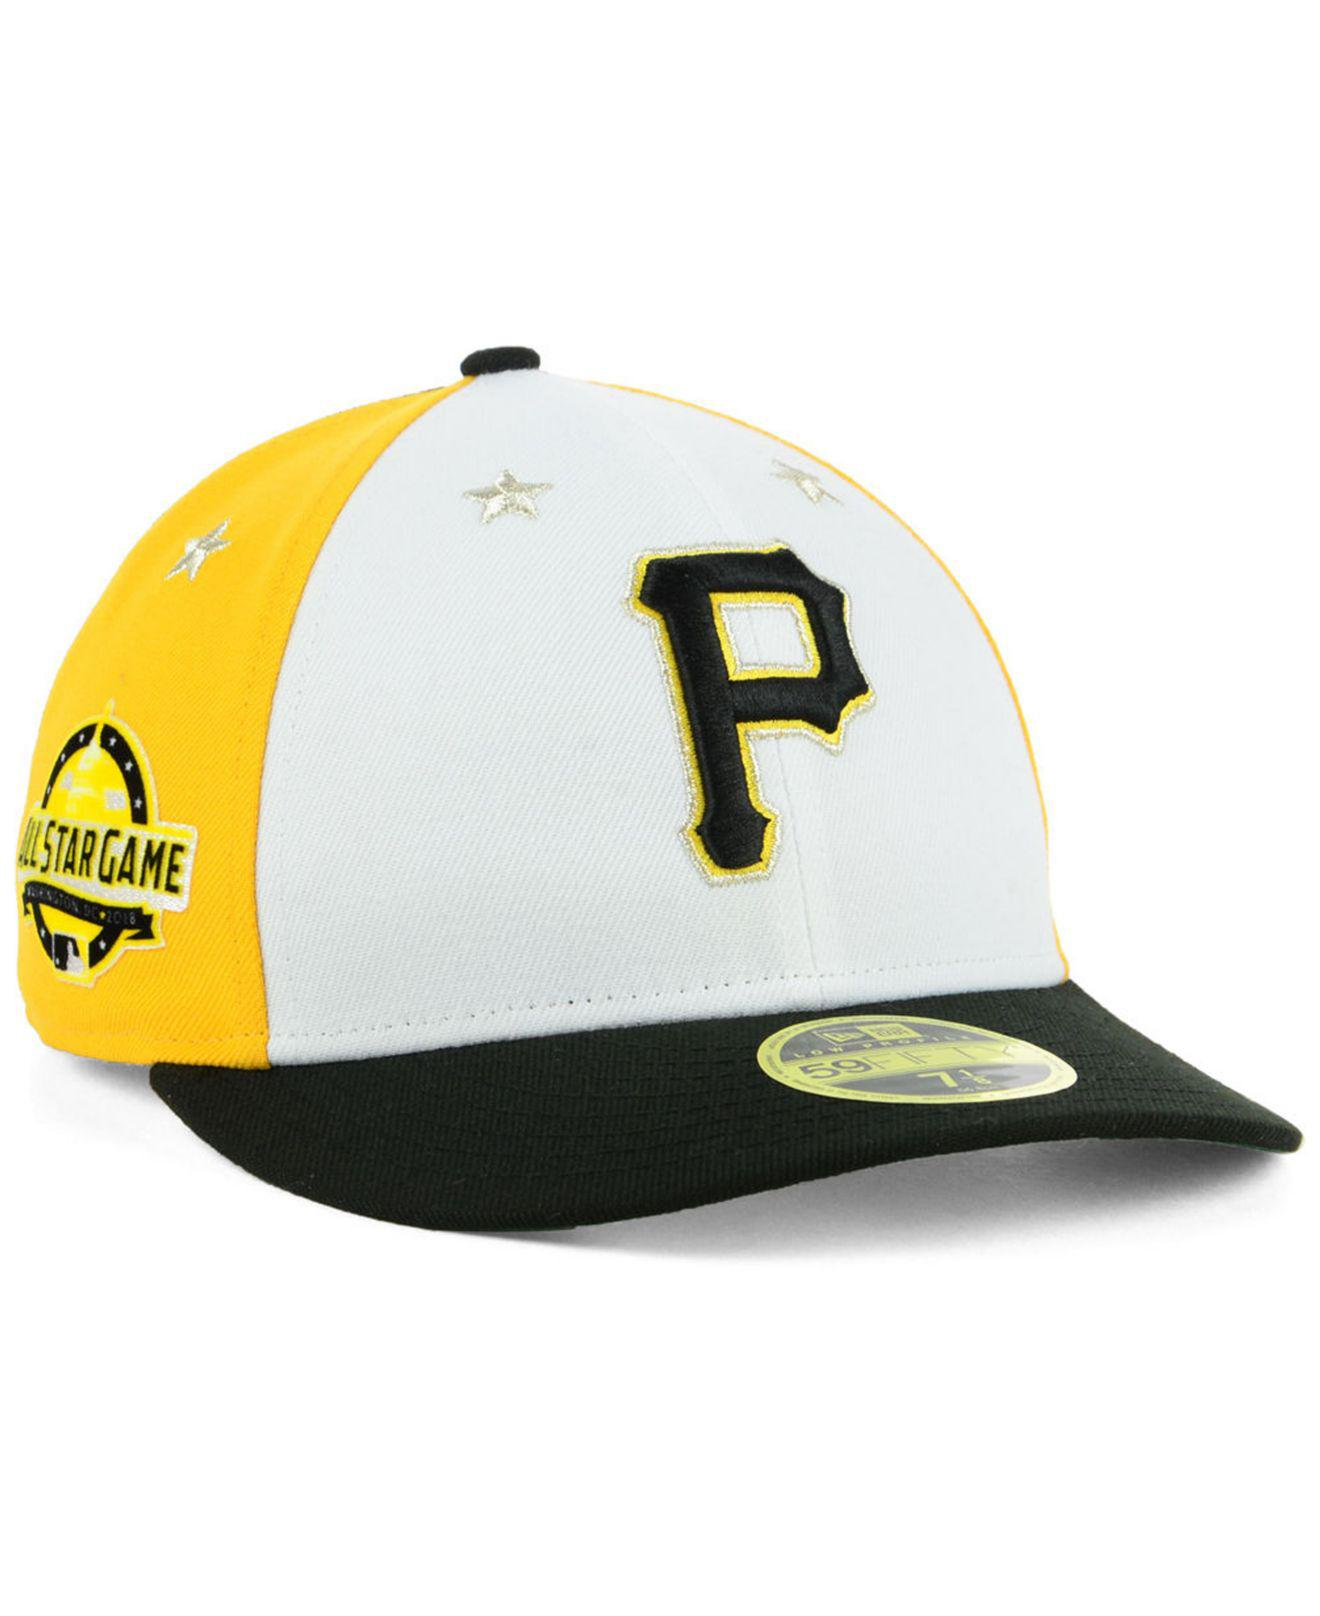 0d3cc9c9503 KTZ - Black Pittsburgh Pirates All Star Game Patch Low Profile 59fifty  Fitted Cap 2018 for. View fullscreen